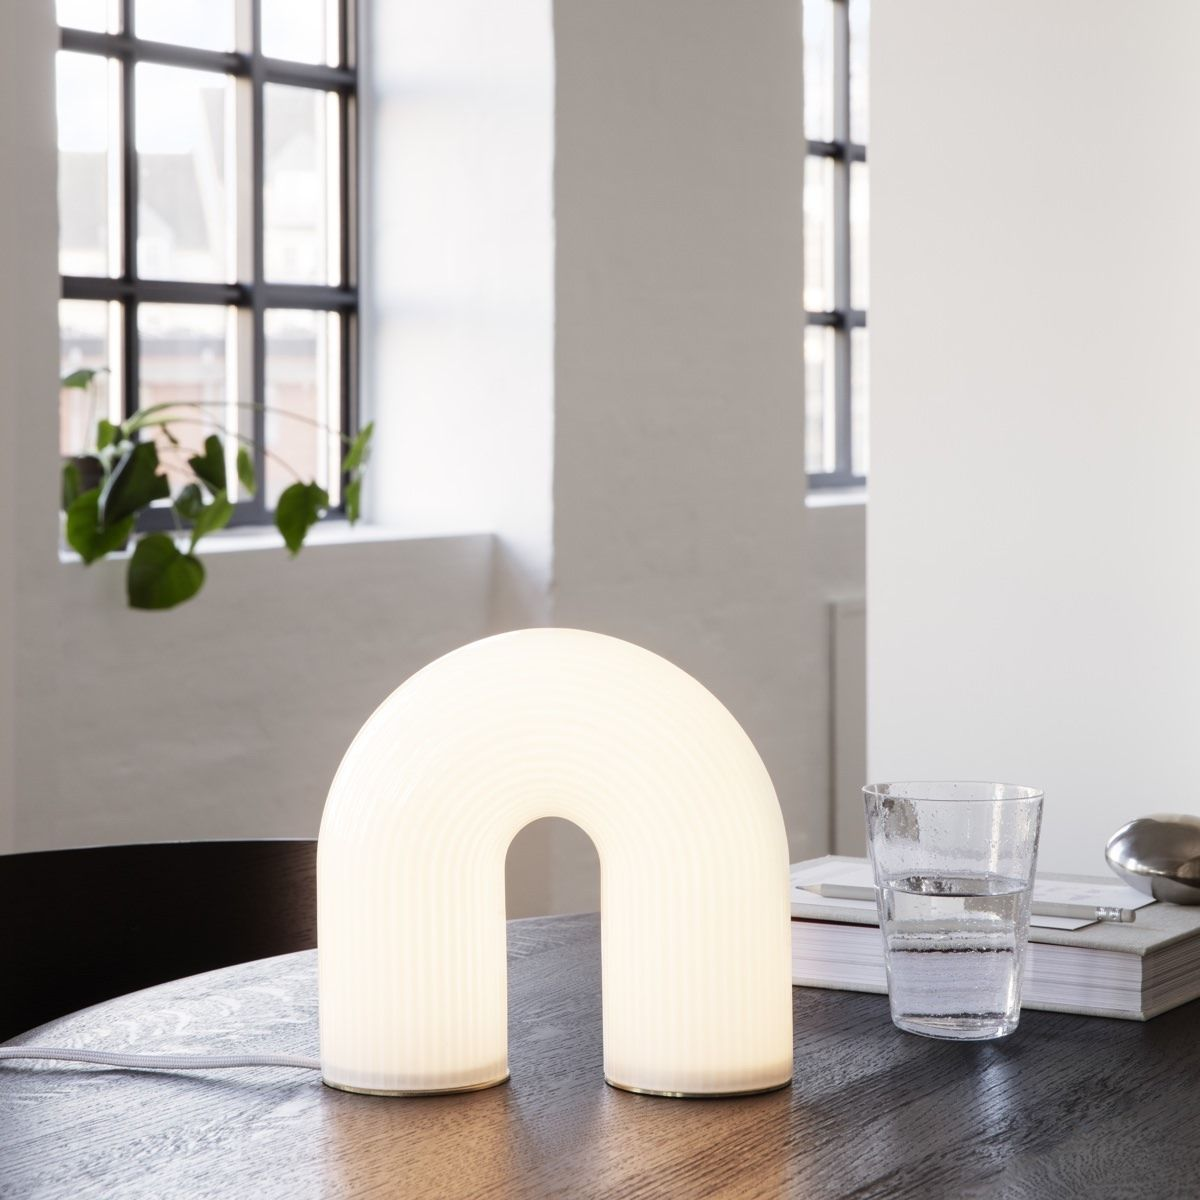 Ferm Living Vuelta Table Lamp switched on, on a desk